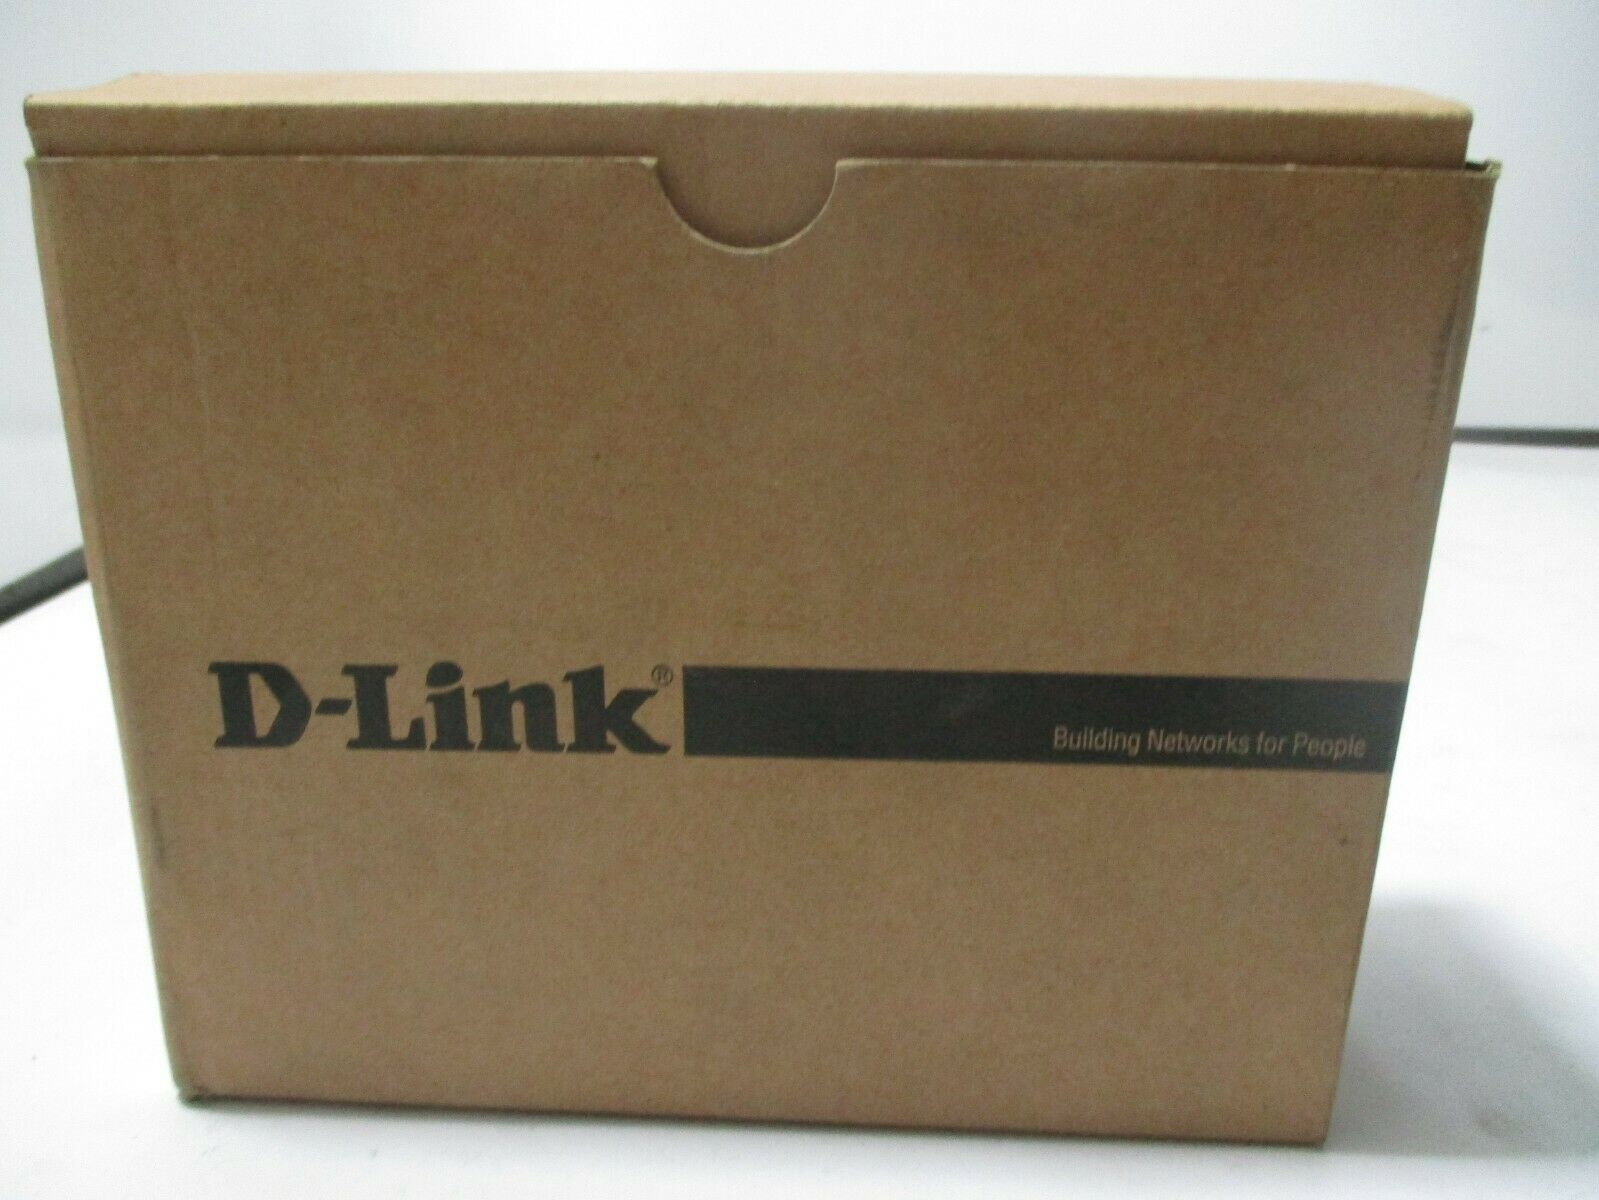 D-Link ANT24-0401 Indoor Omni Directional Ceiling Antenna